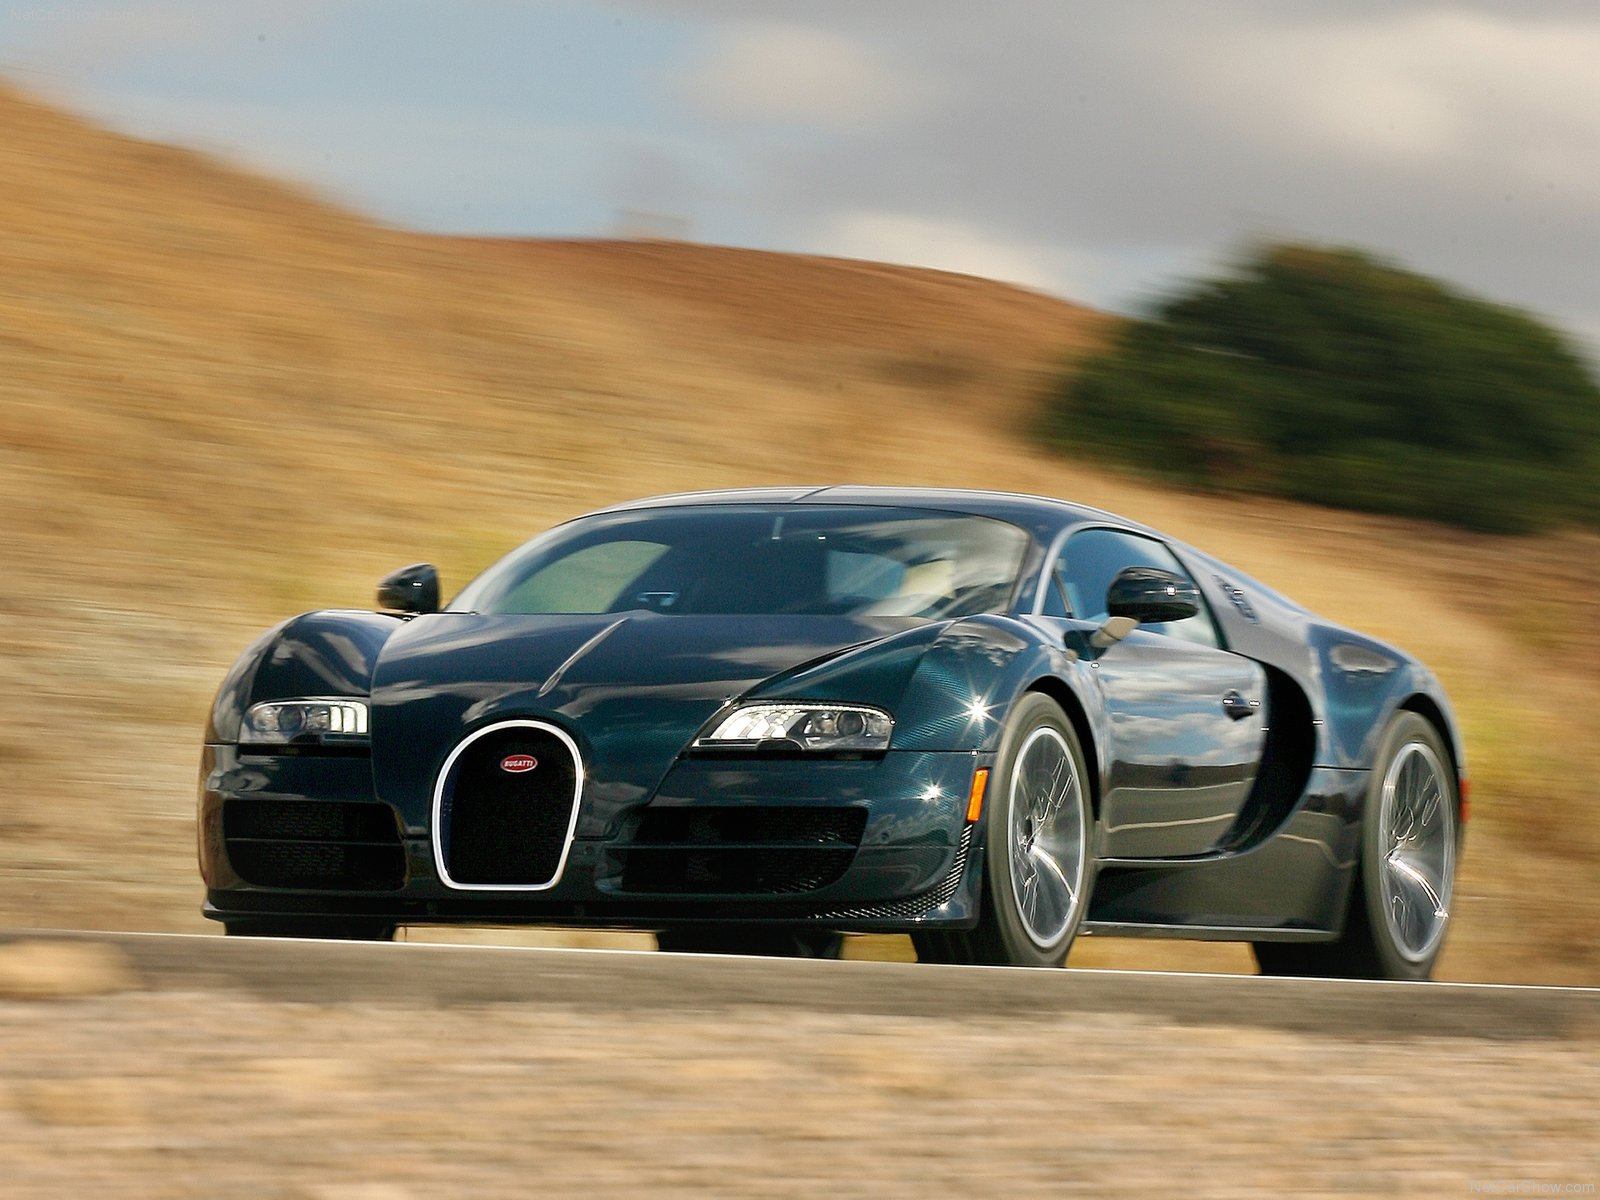 Bugatti Veyron Super Sport Full hd wallpapers